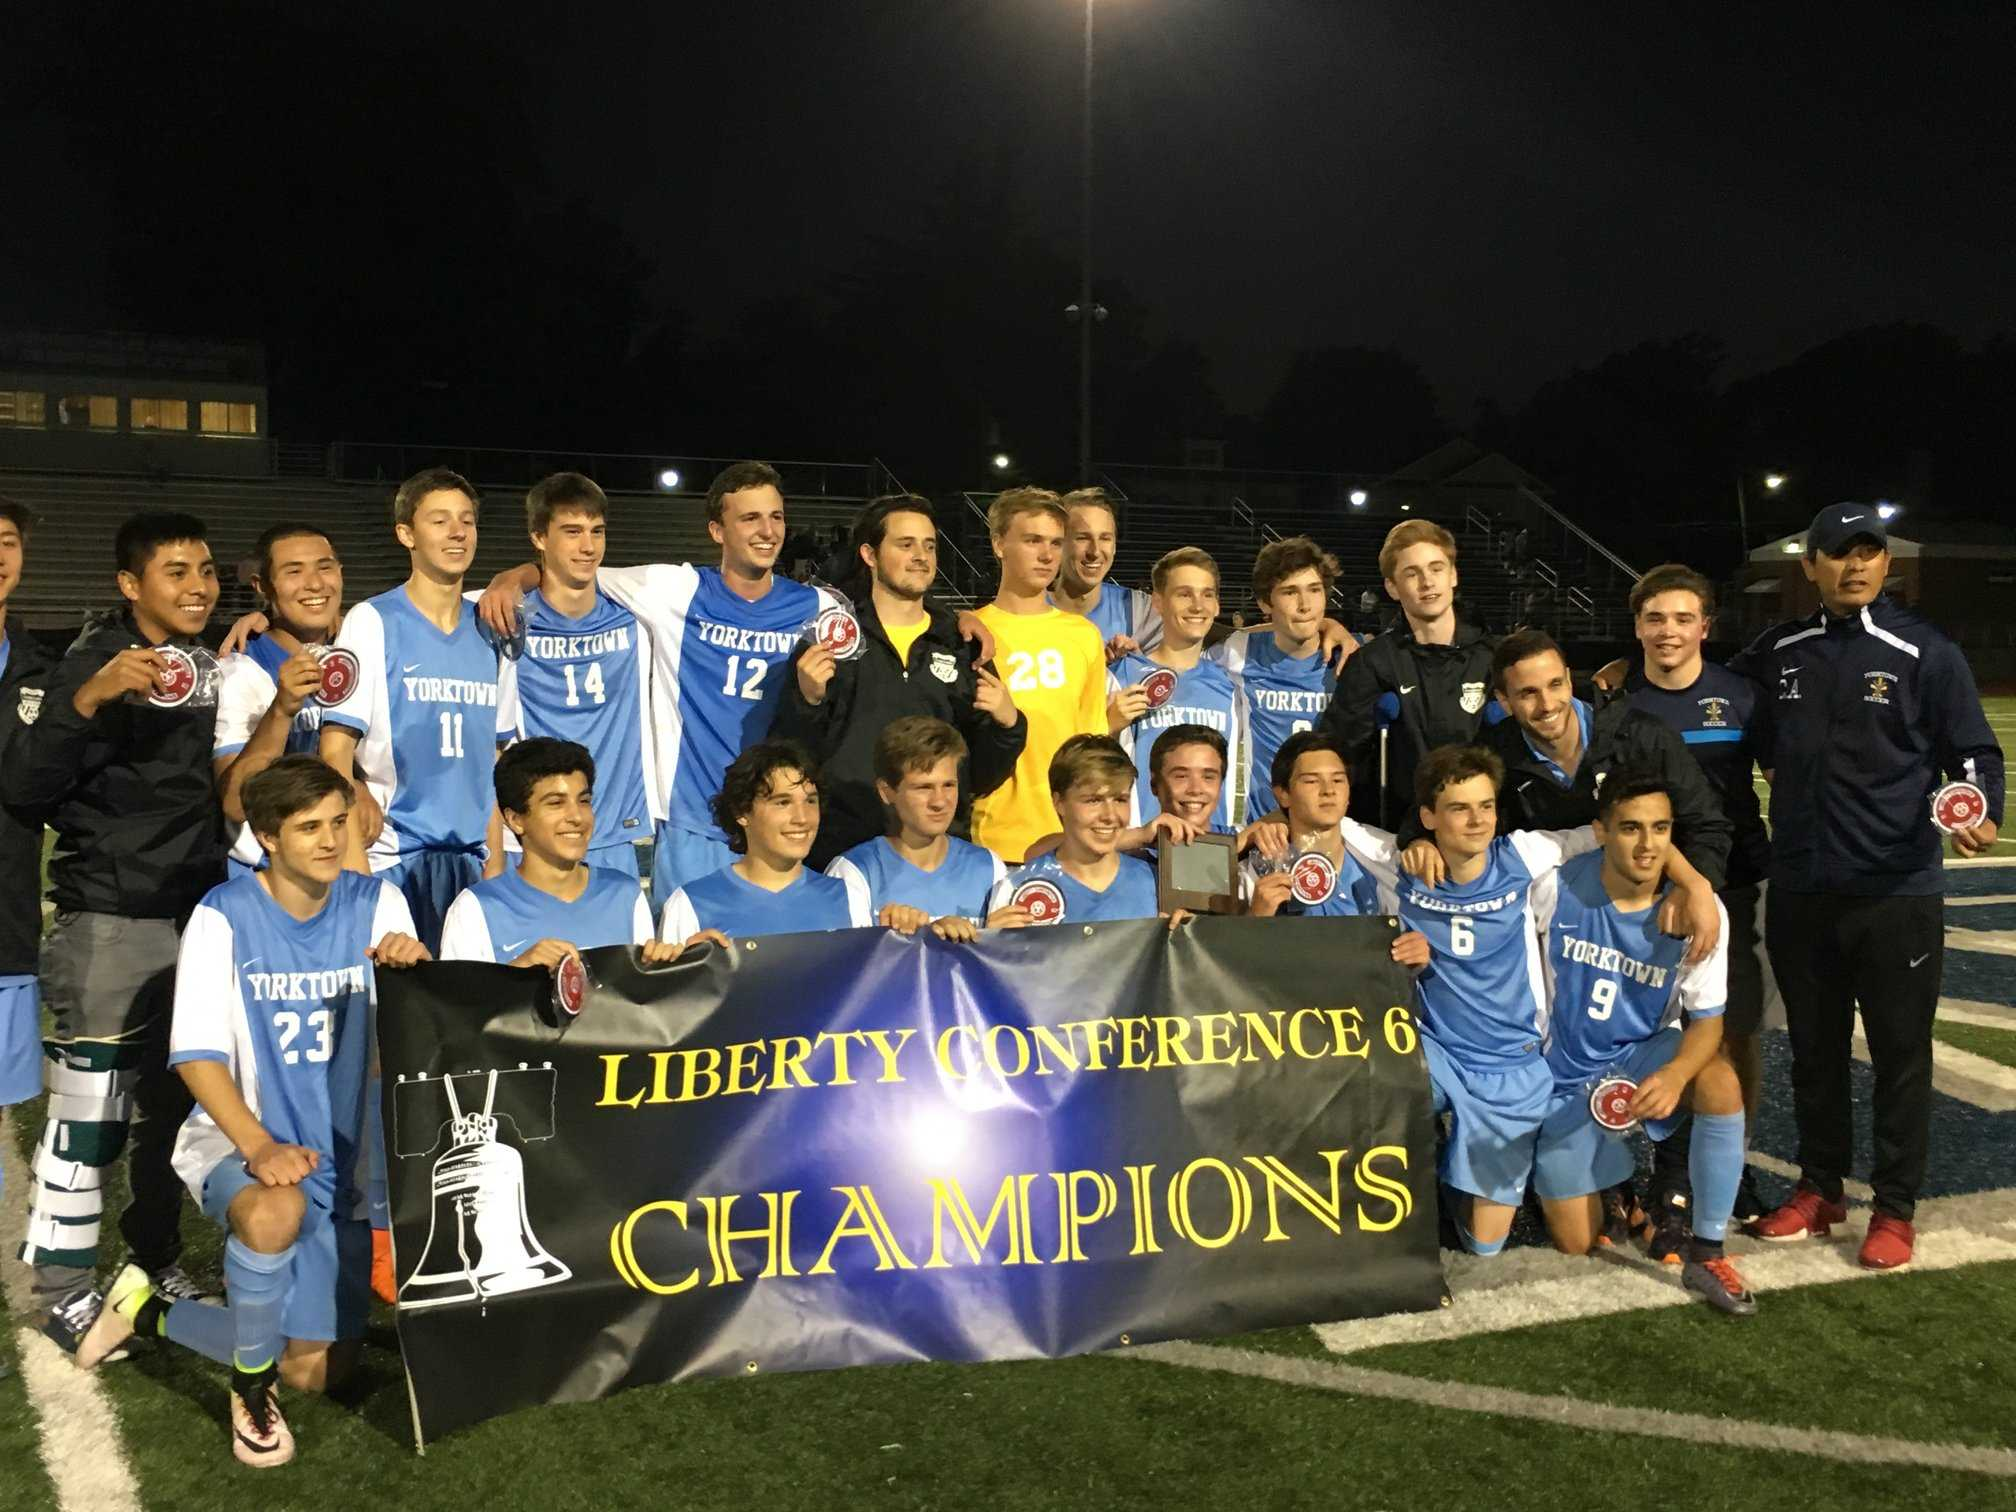 The varsity boys soccer team enjoyed a tremendous season, in which they won a conference championship and advanced to states